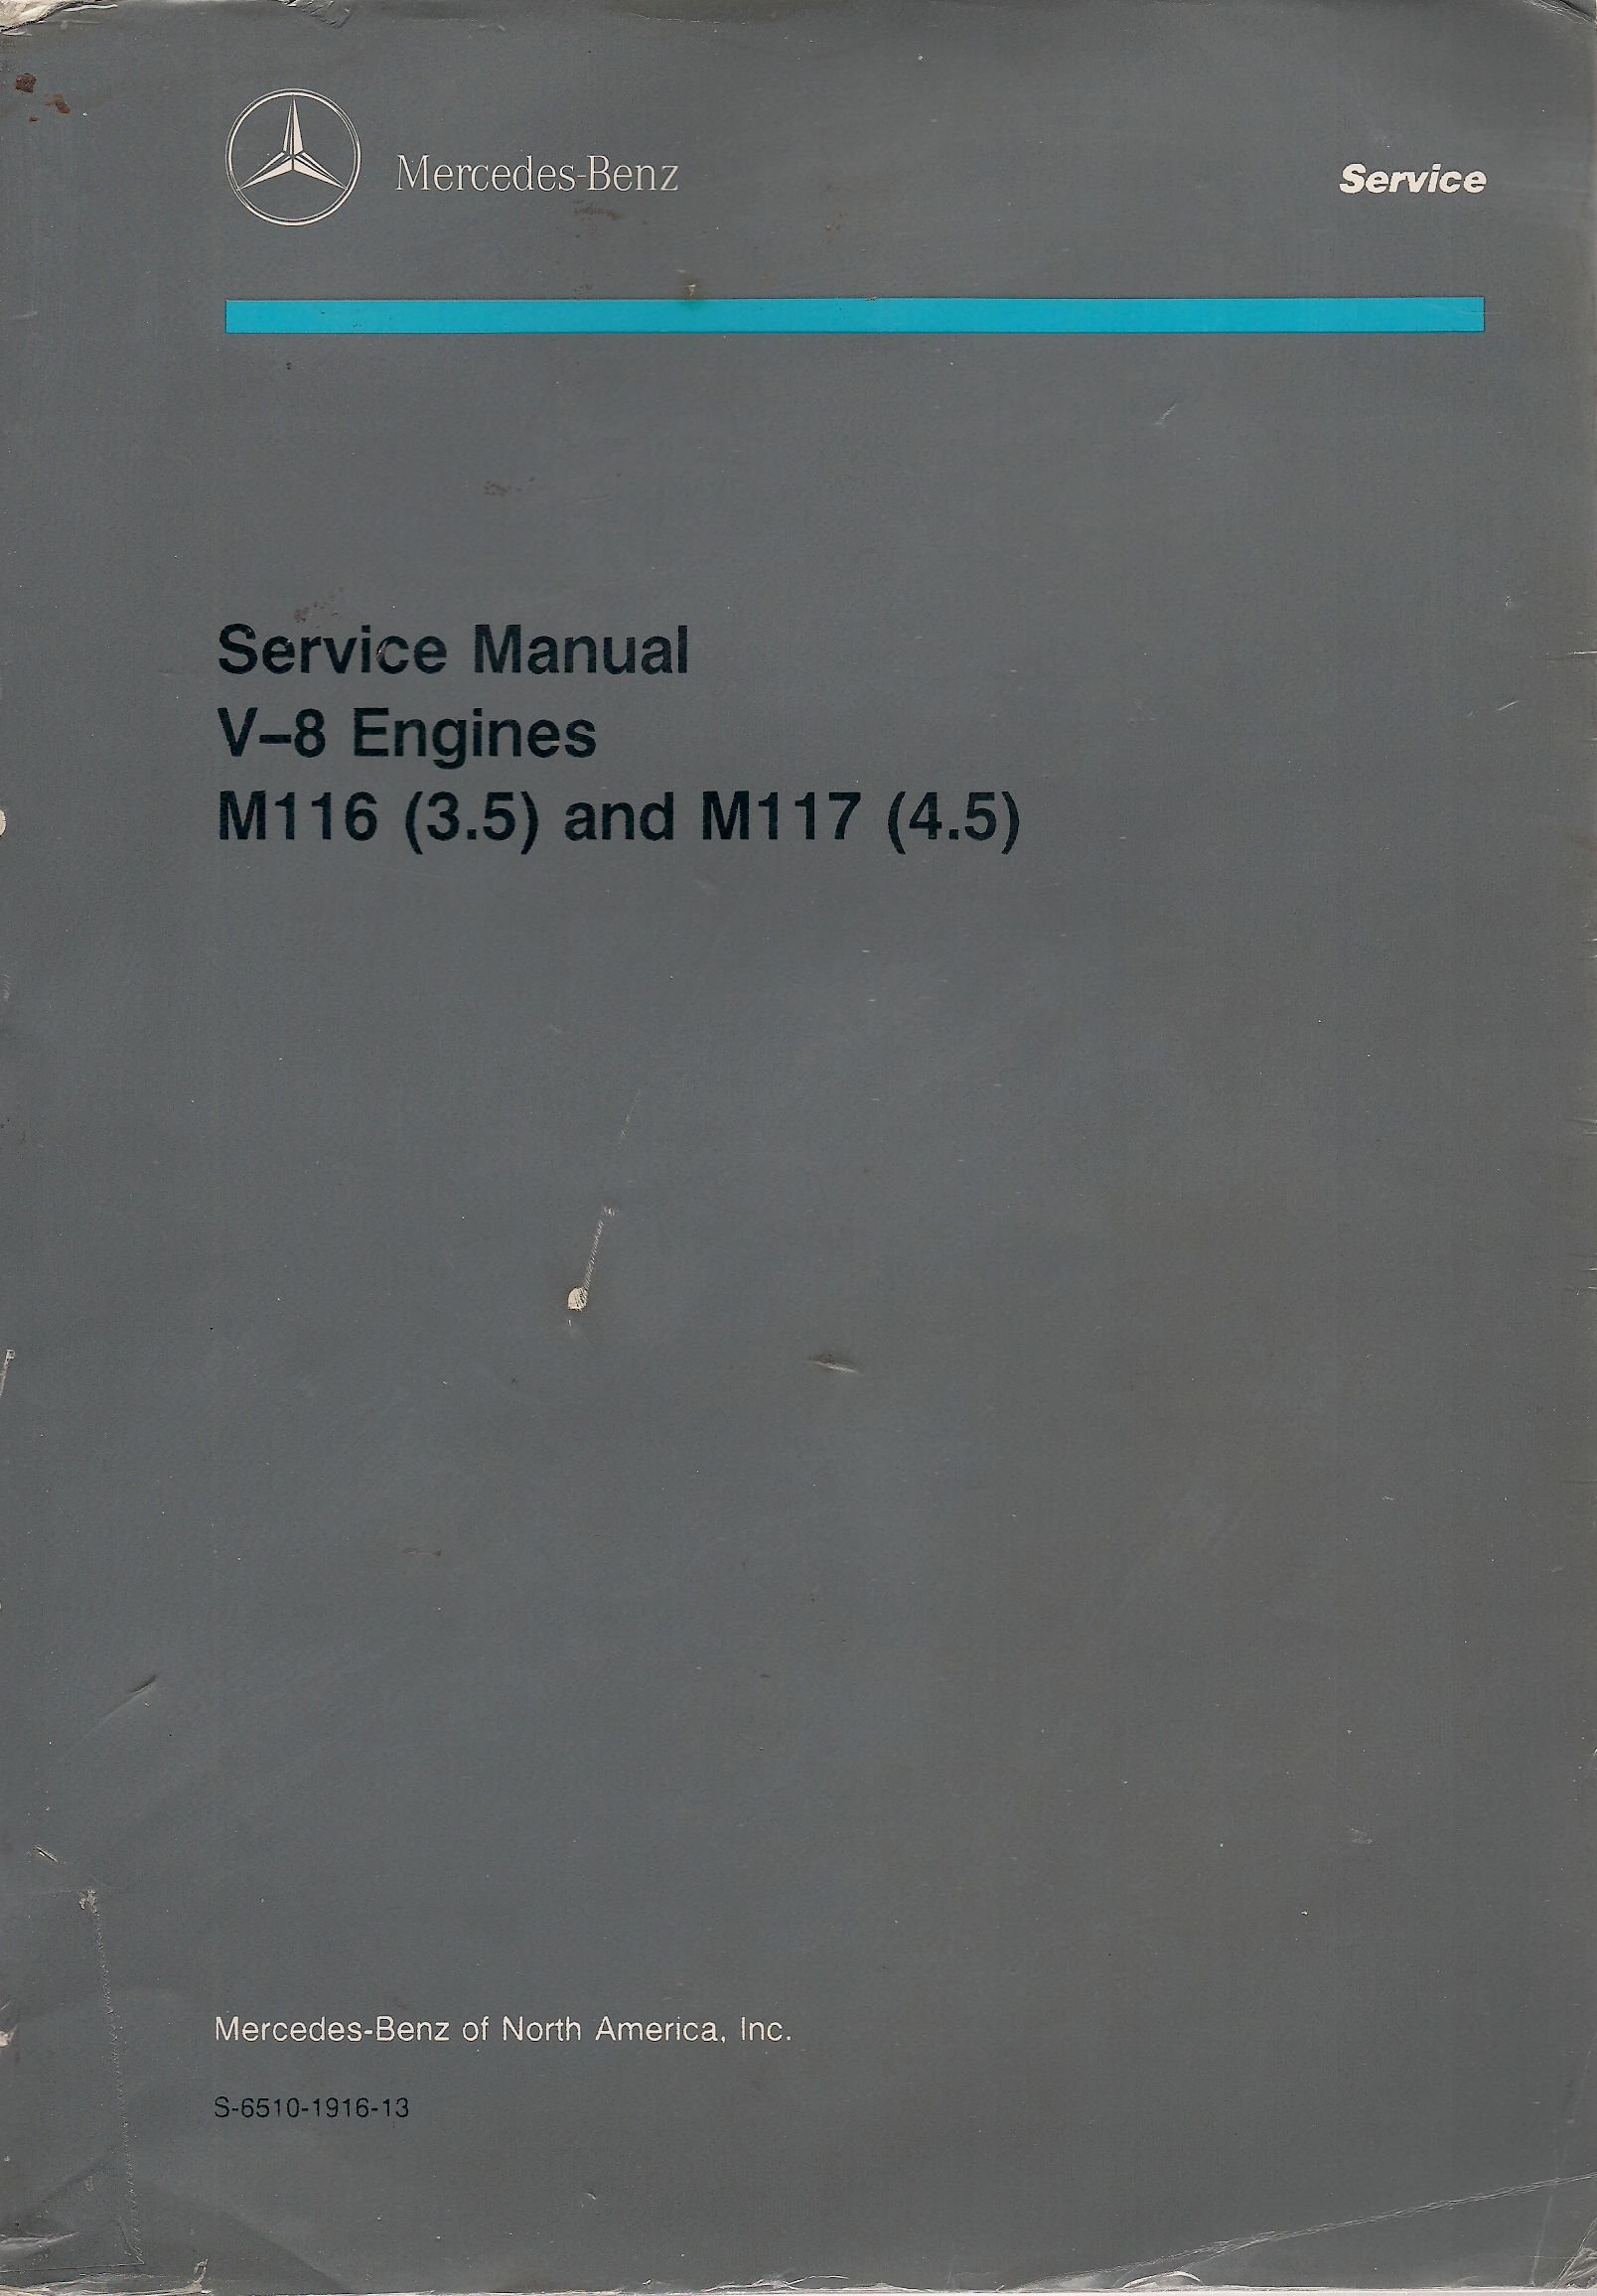 Mercedes Benz Service Manual For V 8 Engines M116 35 Ltr And M117 Engine 45 Copyright 1989 Part No S 6510 1916 13 Inc Of North